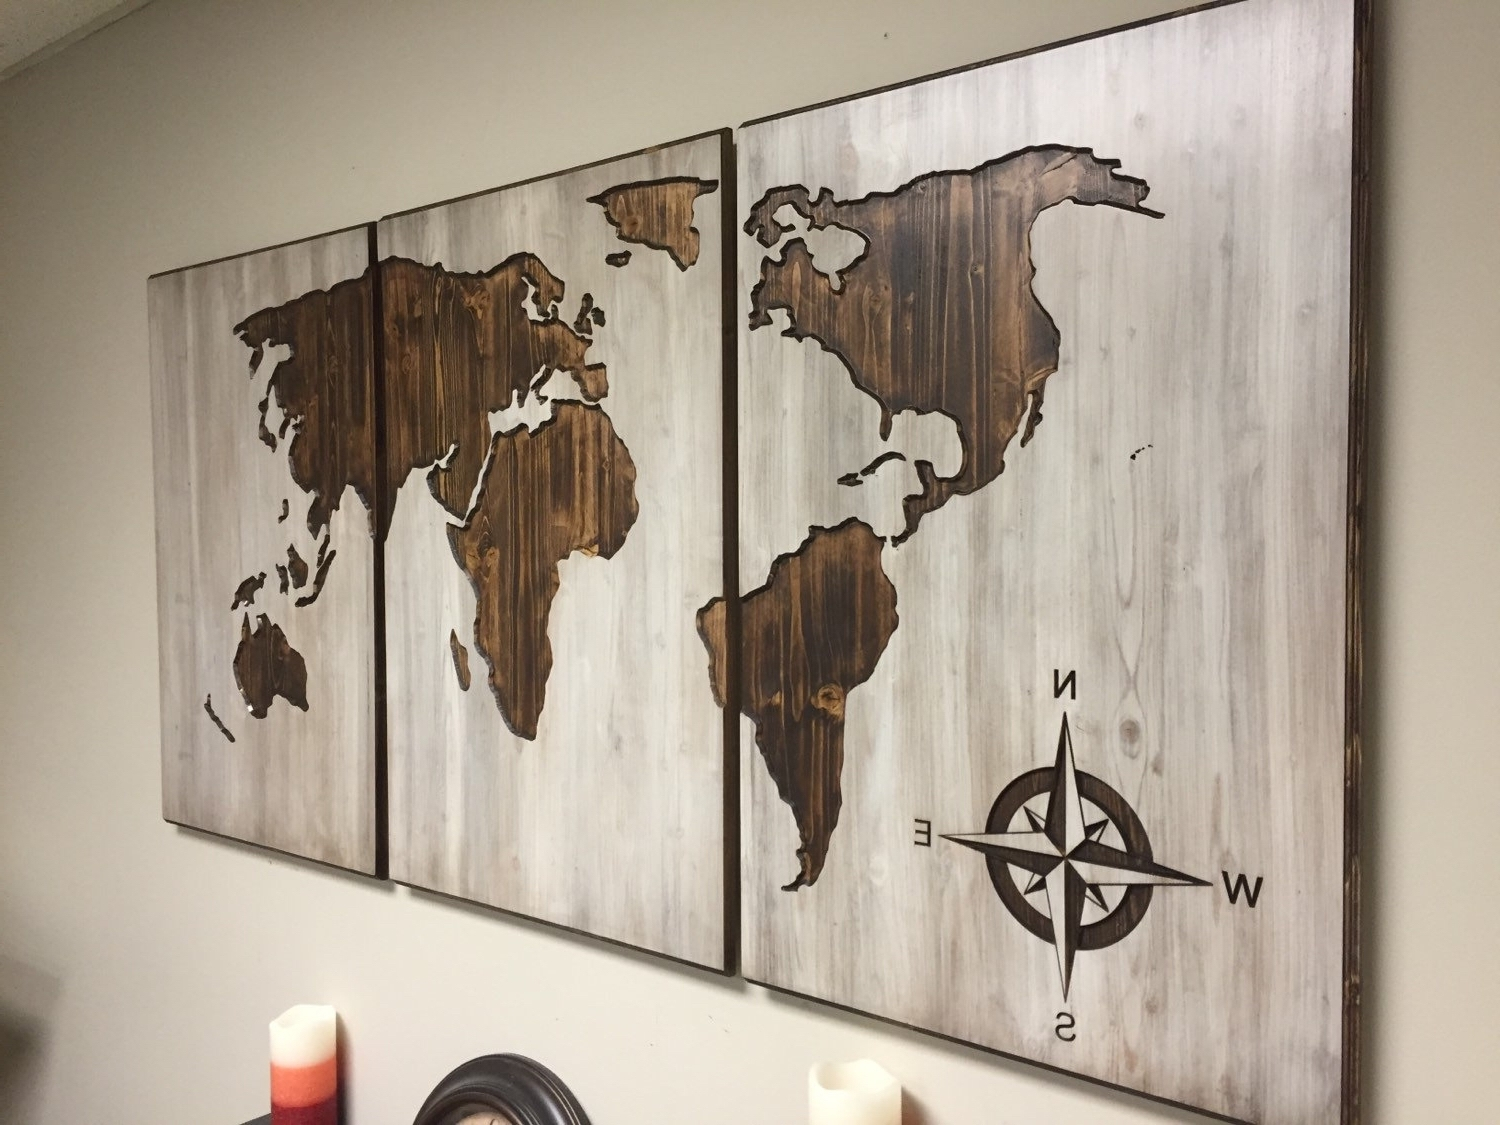 Diy World Map Wall Art Throughout Latest Diy World Map Wall Decor – Arabcooking (View 5 of 15)